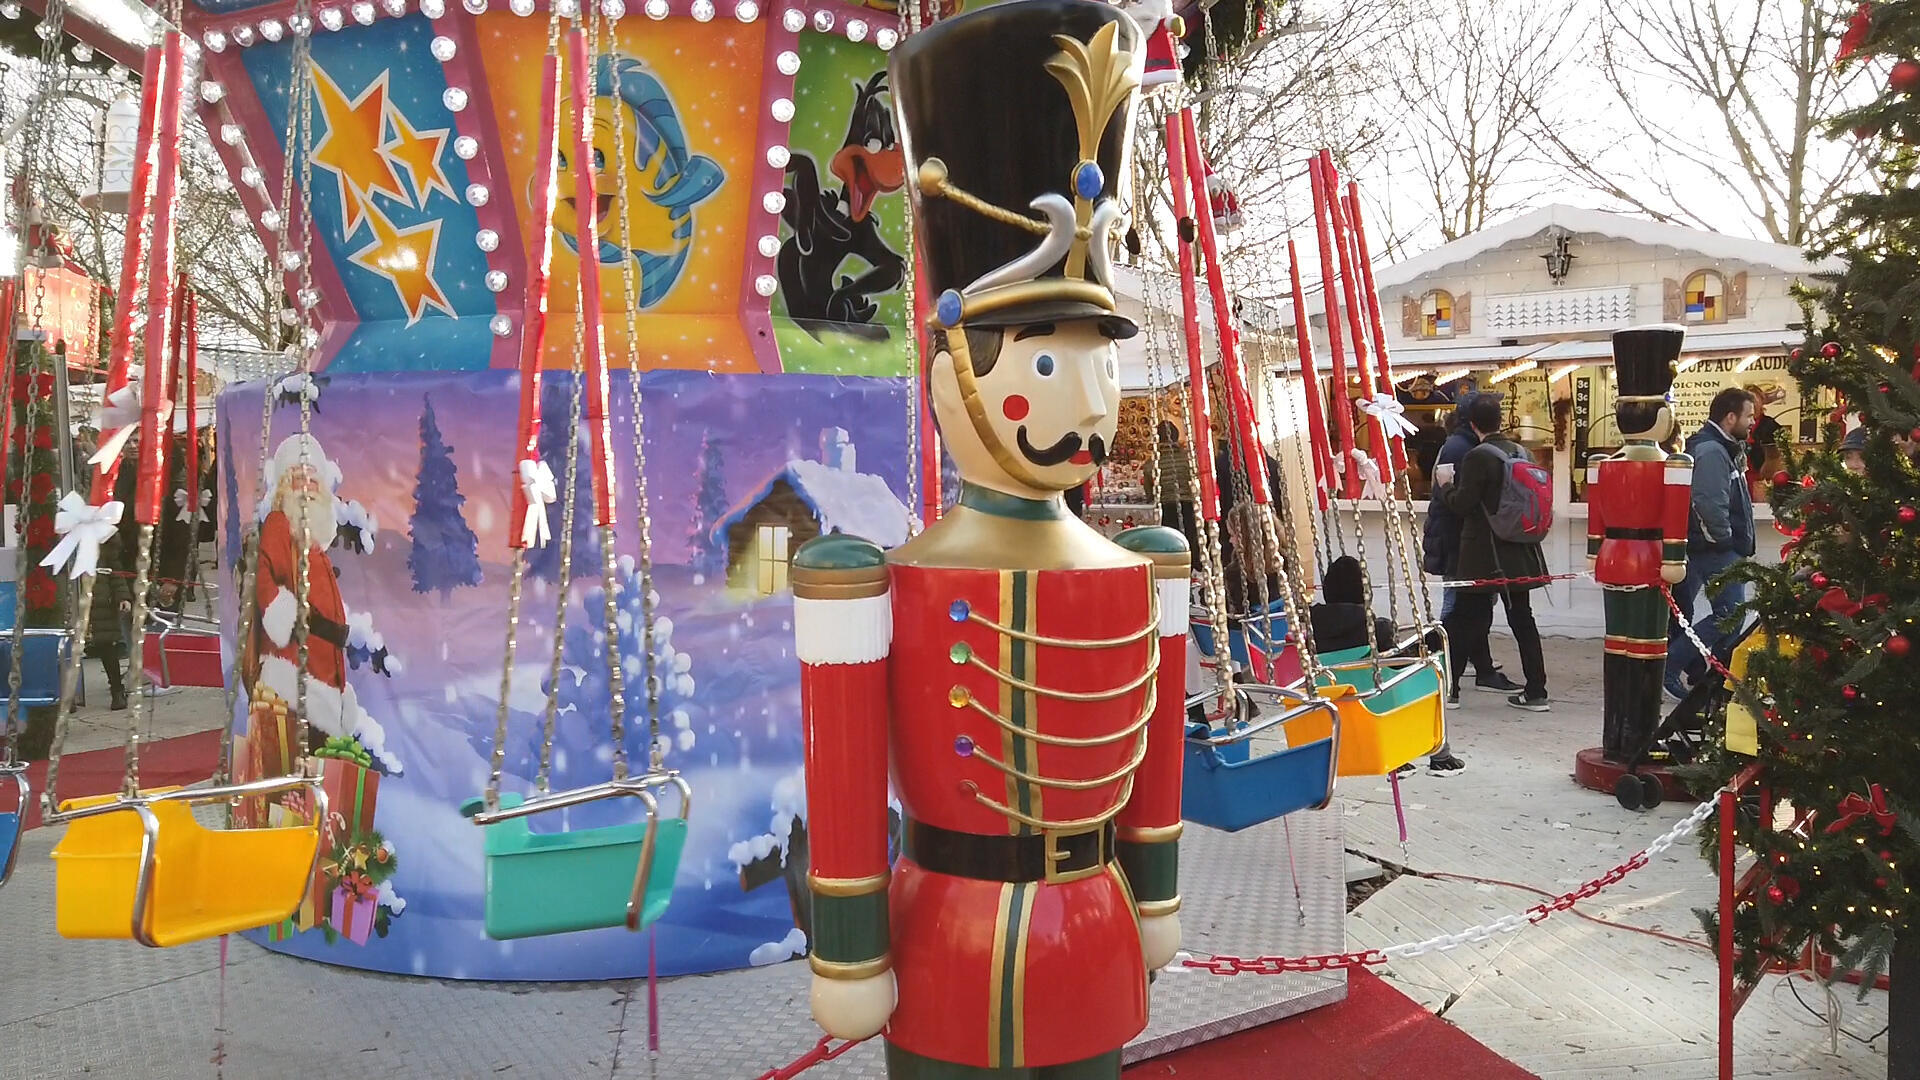 The Christmas market at the Tuileries Gardens in Paris is particularly enjoyable for children (December 2019)